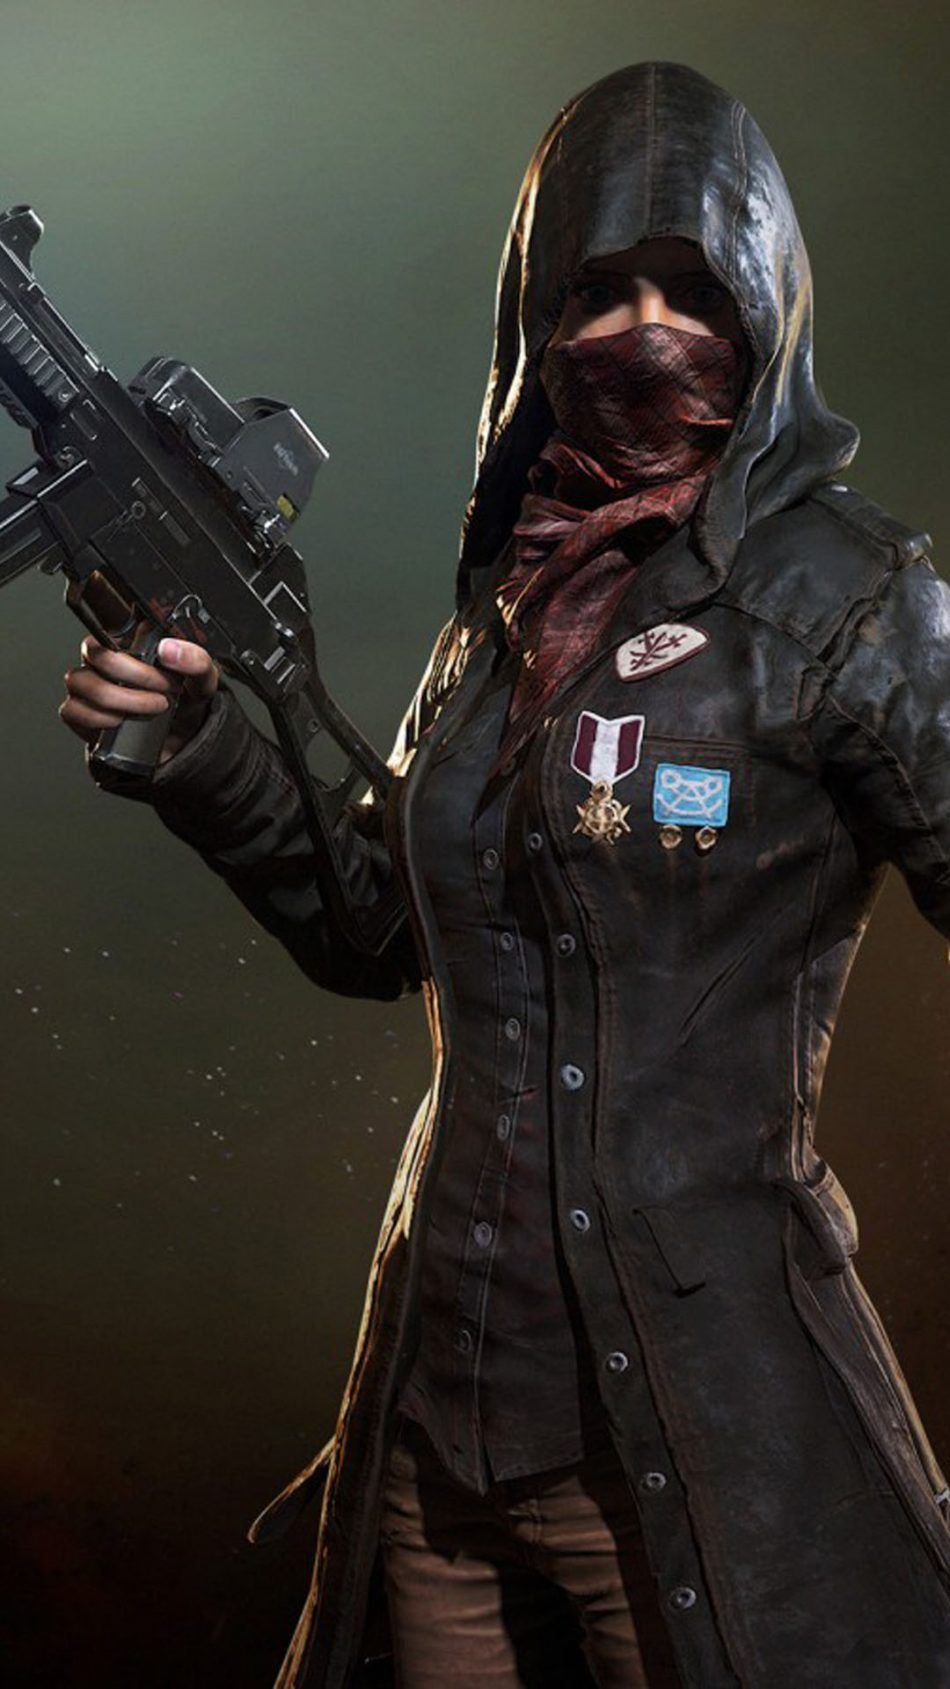 PUBG Female Player In Mask Pubg Hd wallpapers for mobile 950x1689